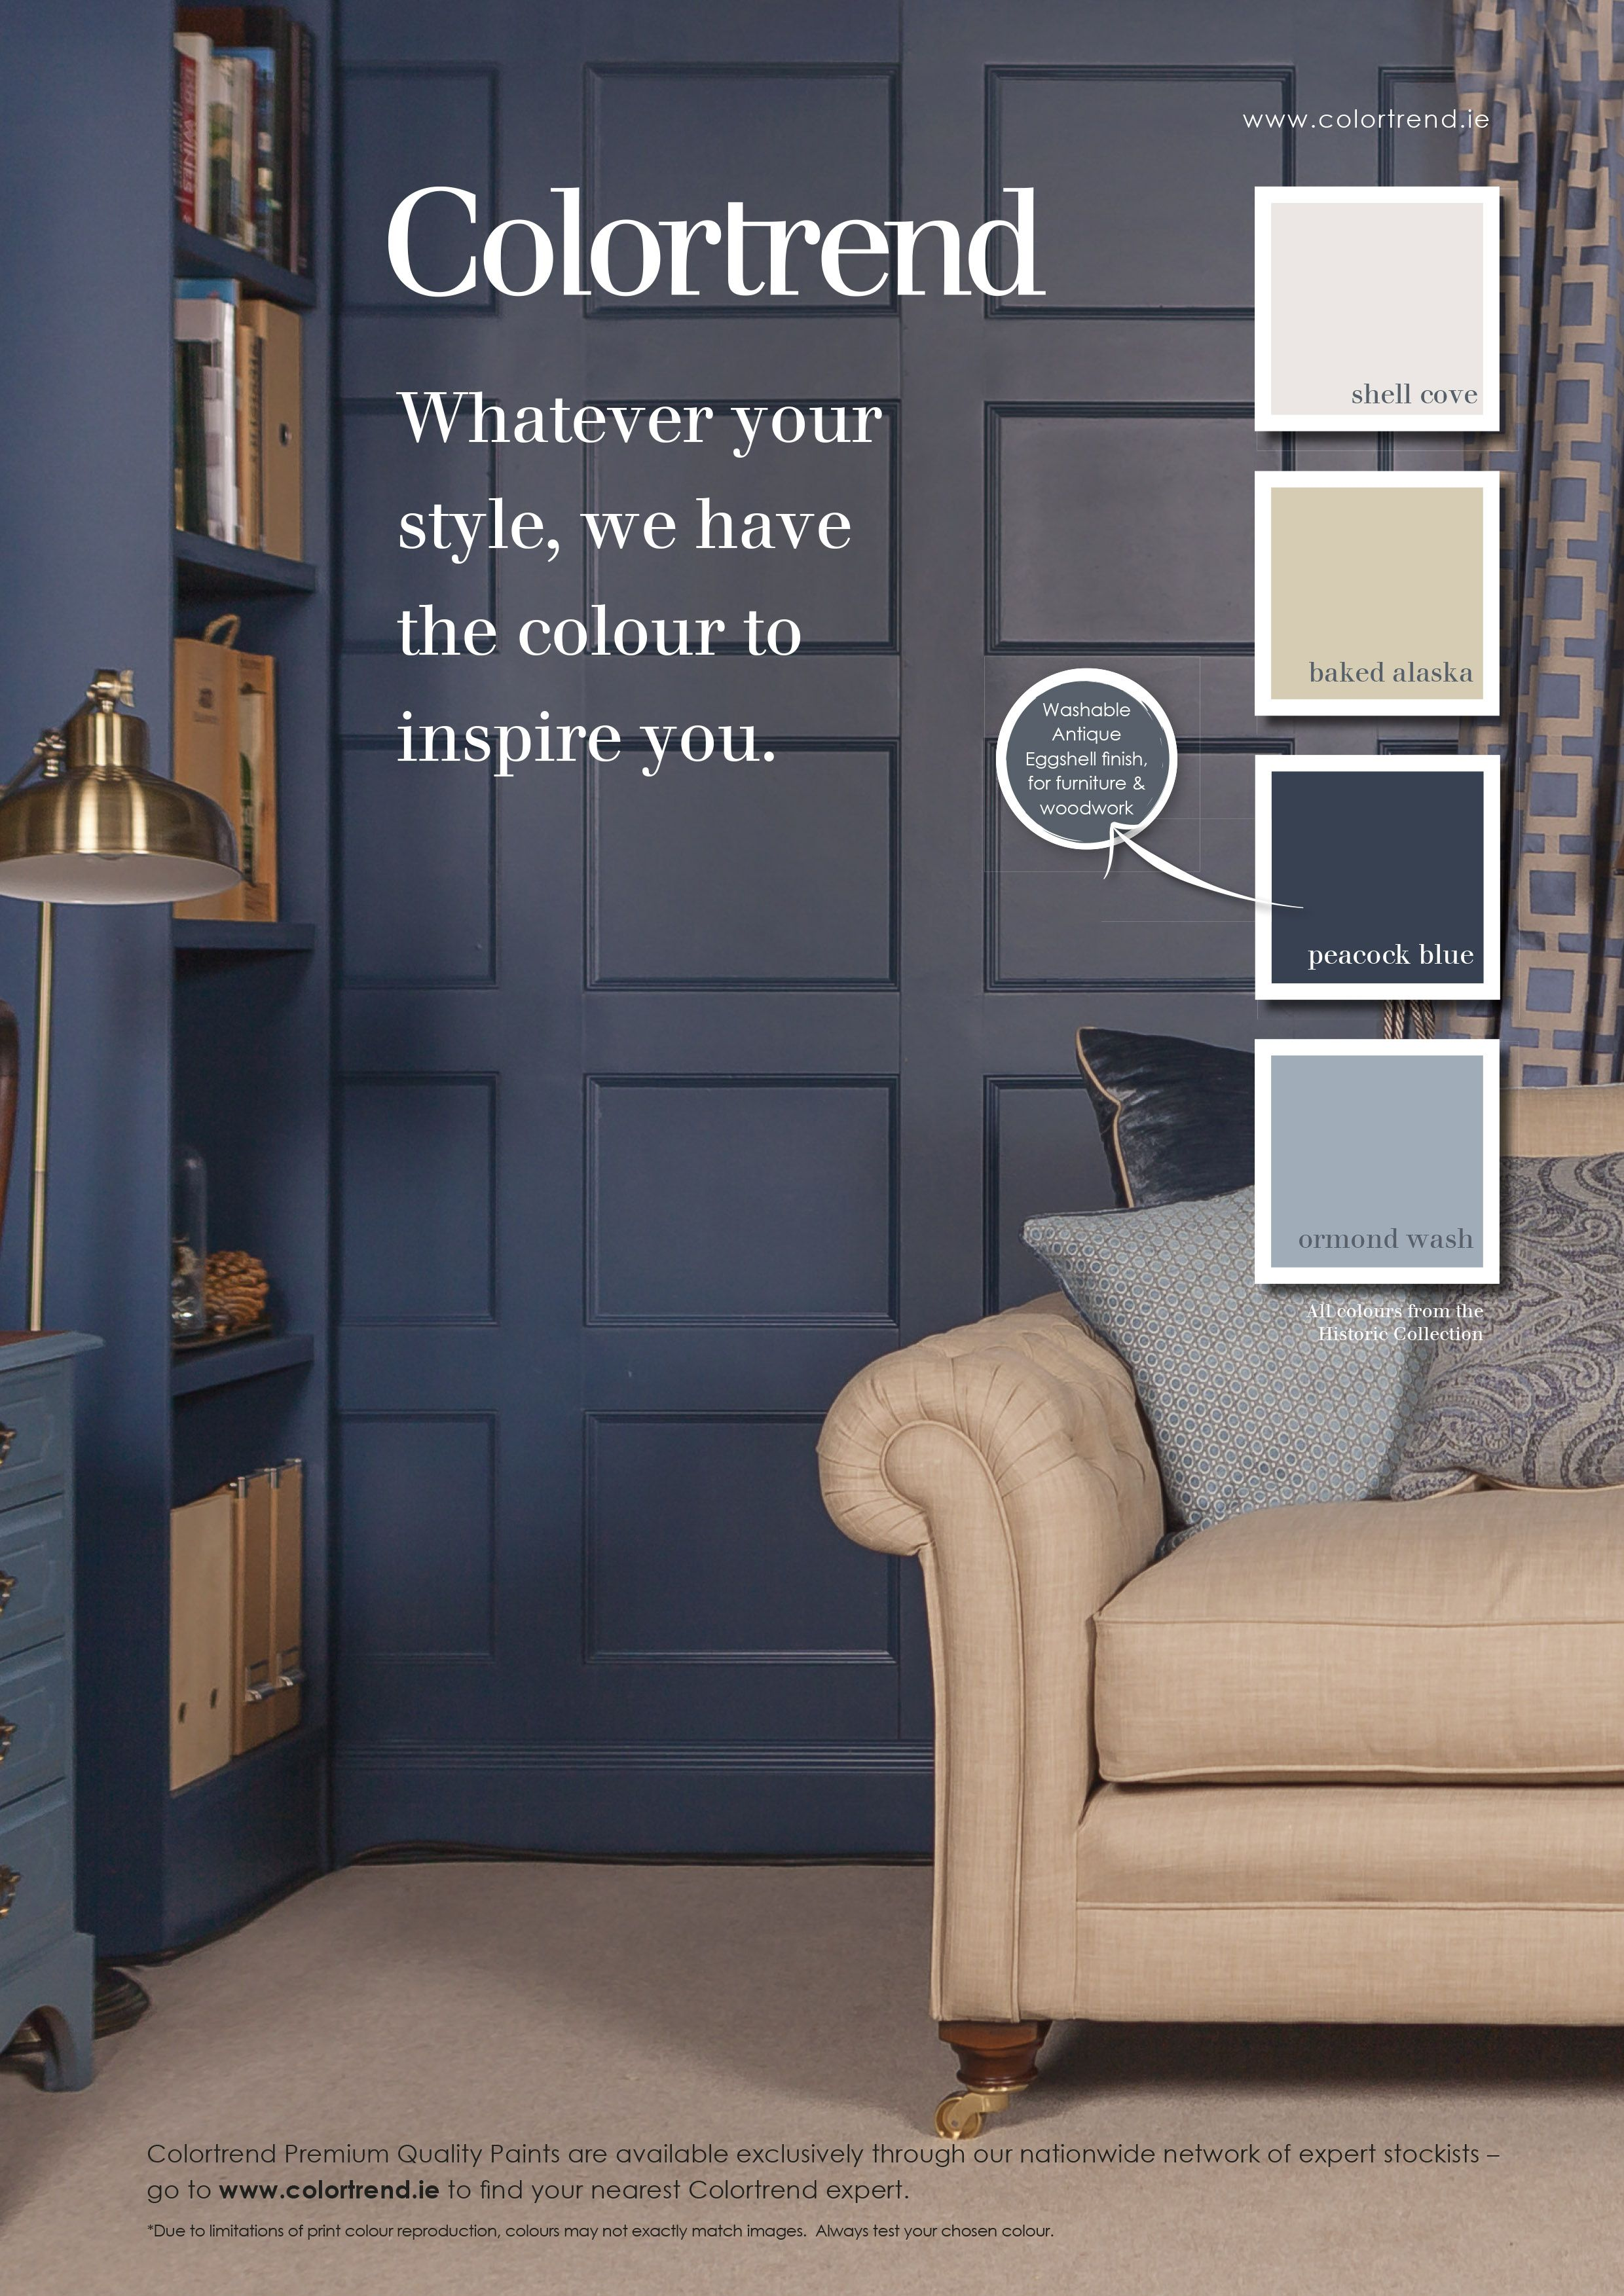 Bedroom Paint Ideas Ireland pincolourtrend paints on inspiring ads | pinterest | house